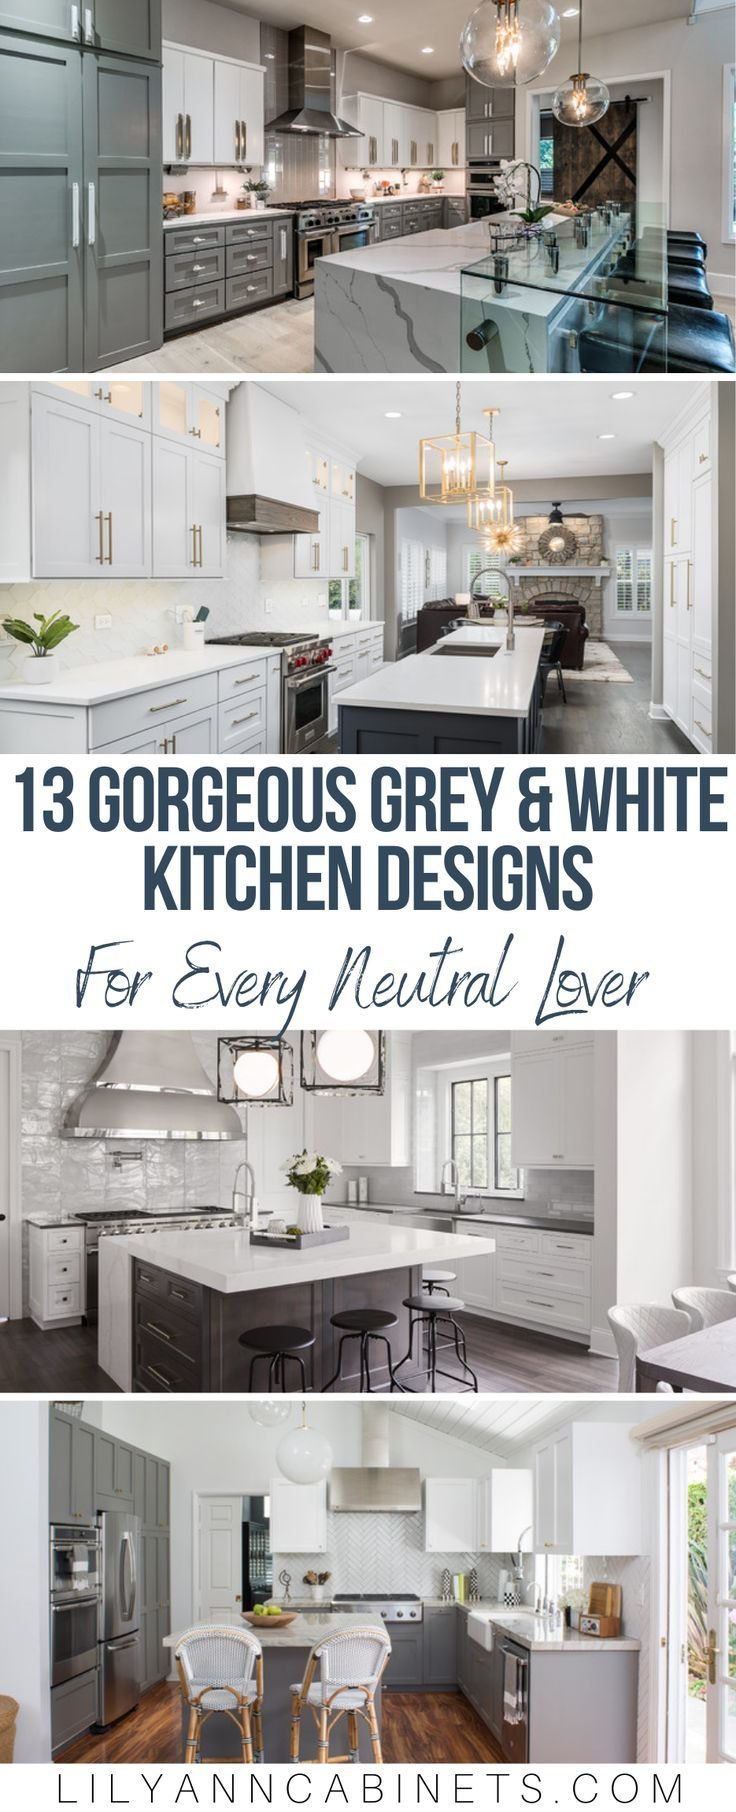 Neutral Noteworthy 13 Grey And White Kitchen Designs White Kitchen Design Kitchen Design Kitchen Inspiration Design